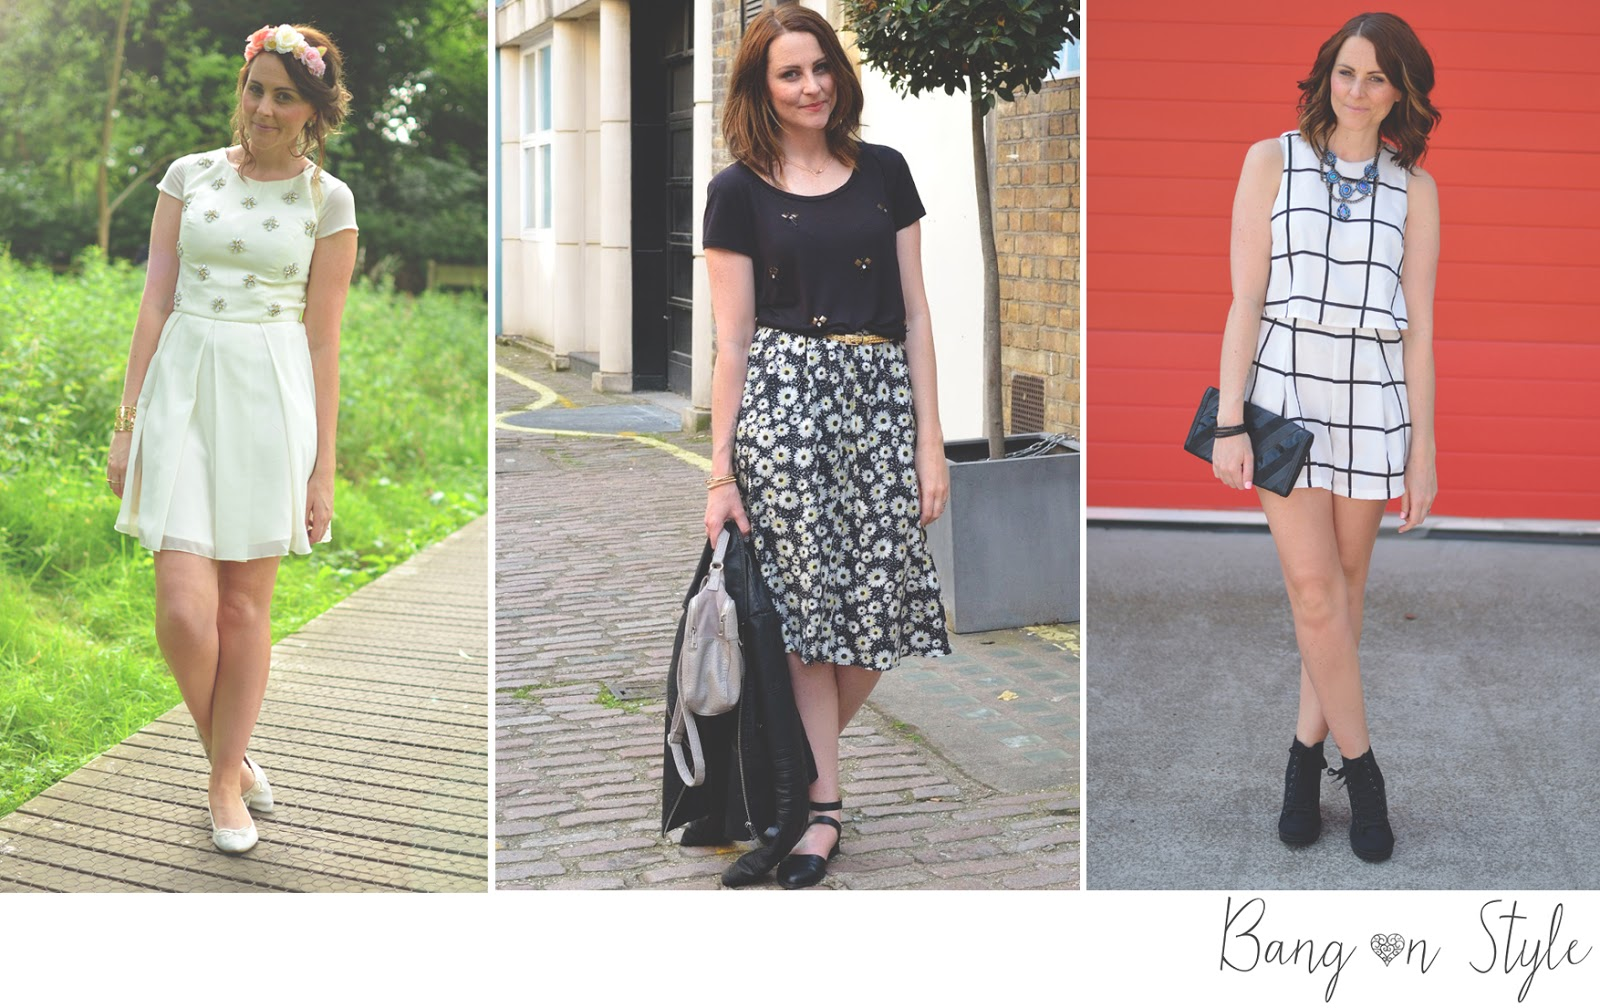 Bang On Style blog, fashion blogger uk